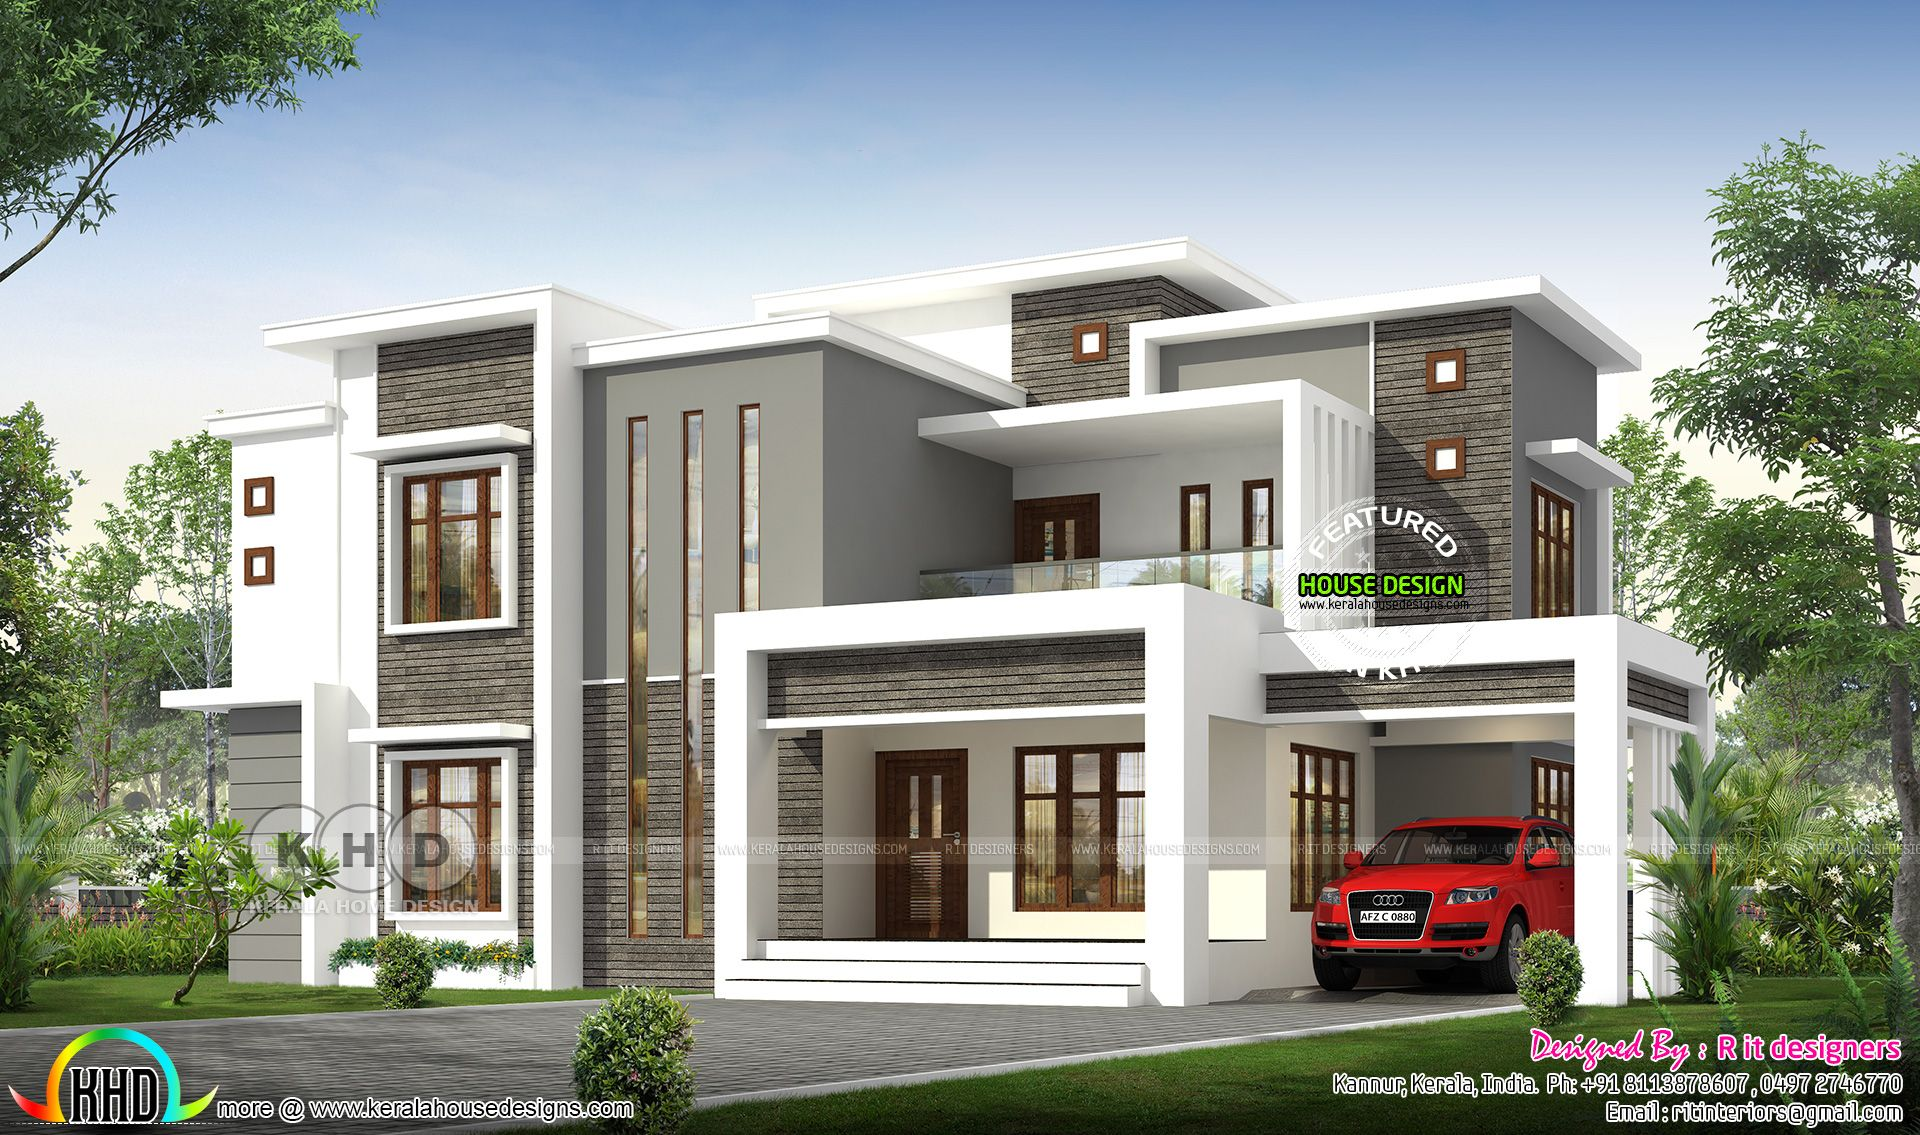 2496 Sq Ft Flat Roof Modern Contemporary Kerala House Kerala House Design Duplex House Design Contemporary House Plans